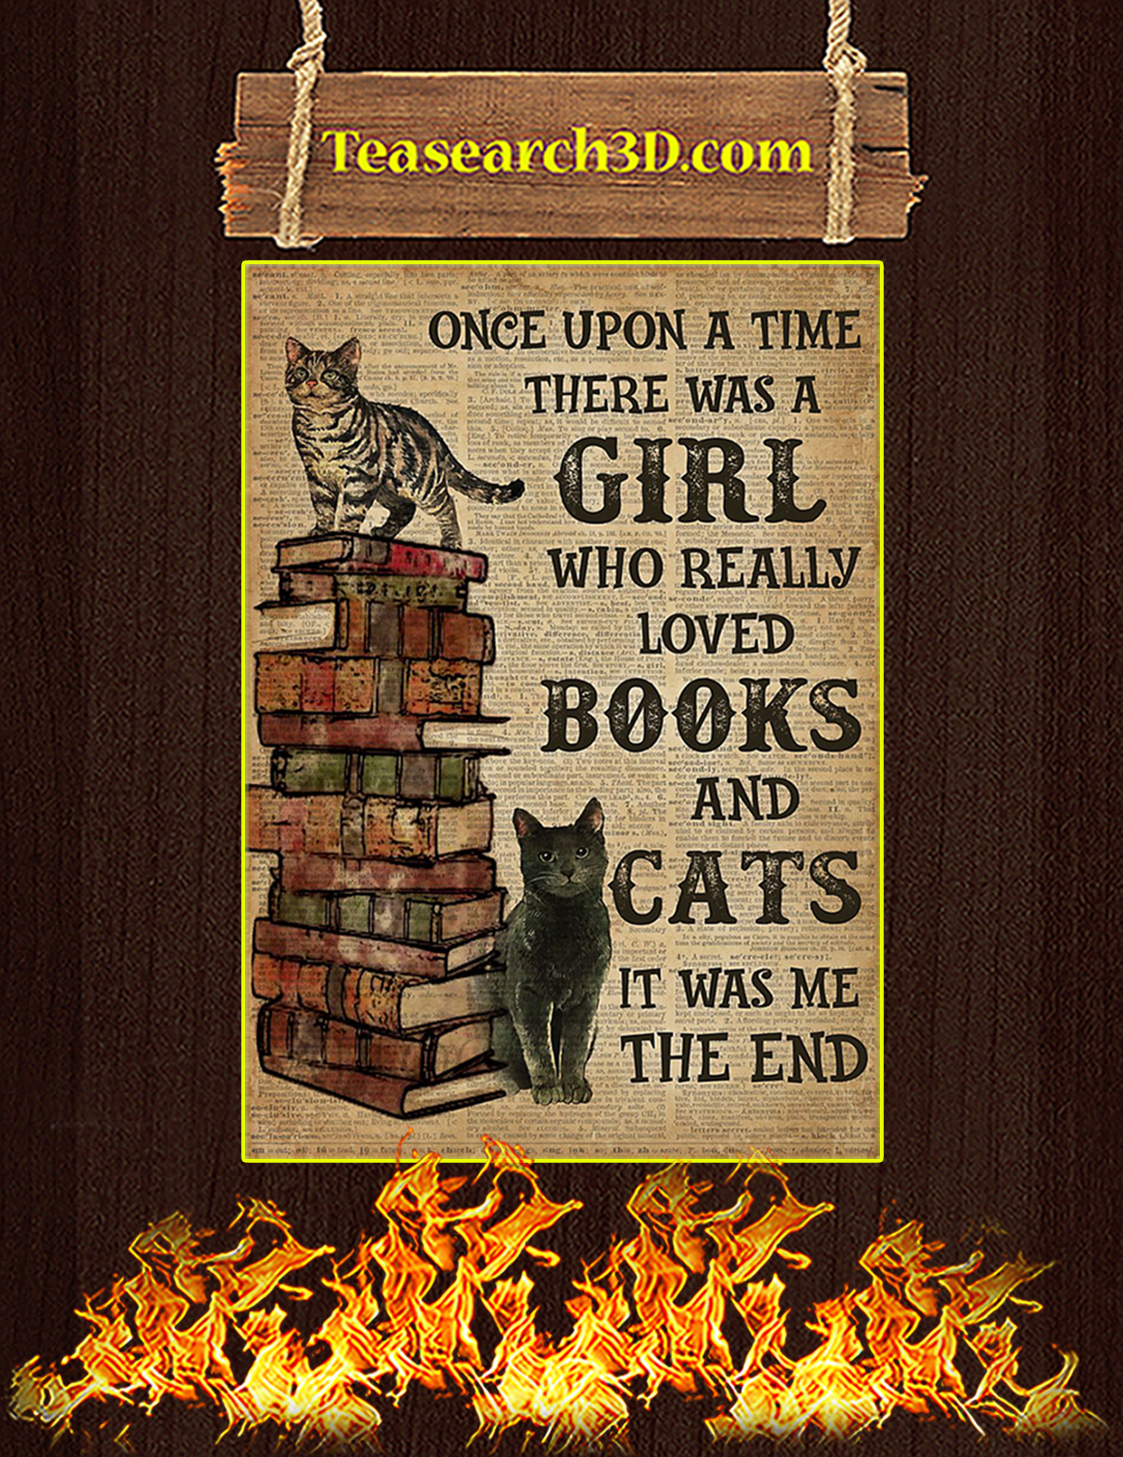 Once Upon A Time There Was A Girl Loved Boojs And Cats Poster A3